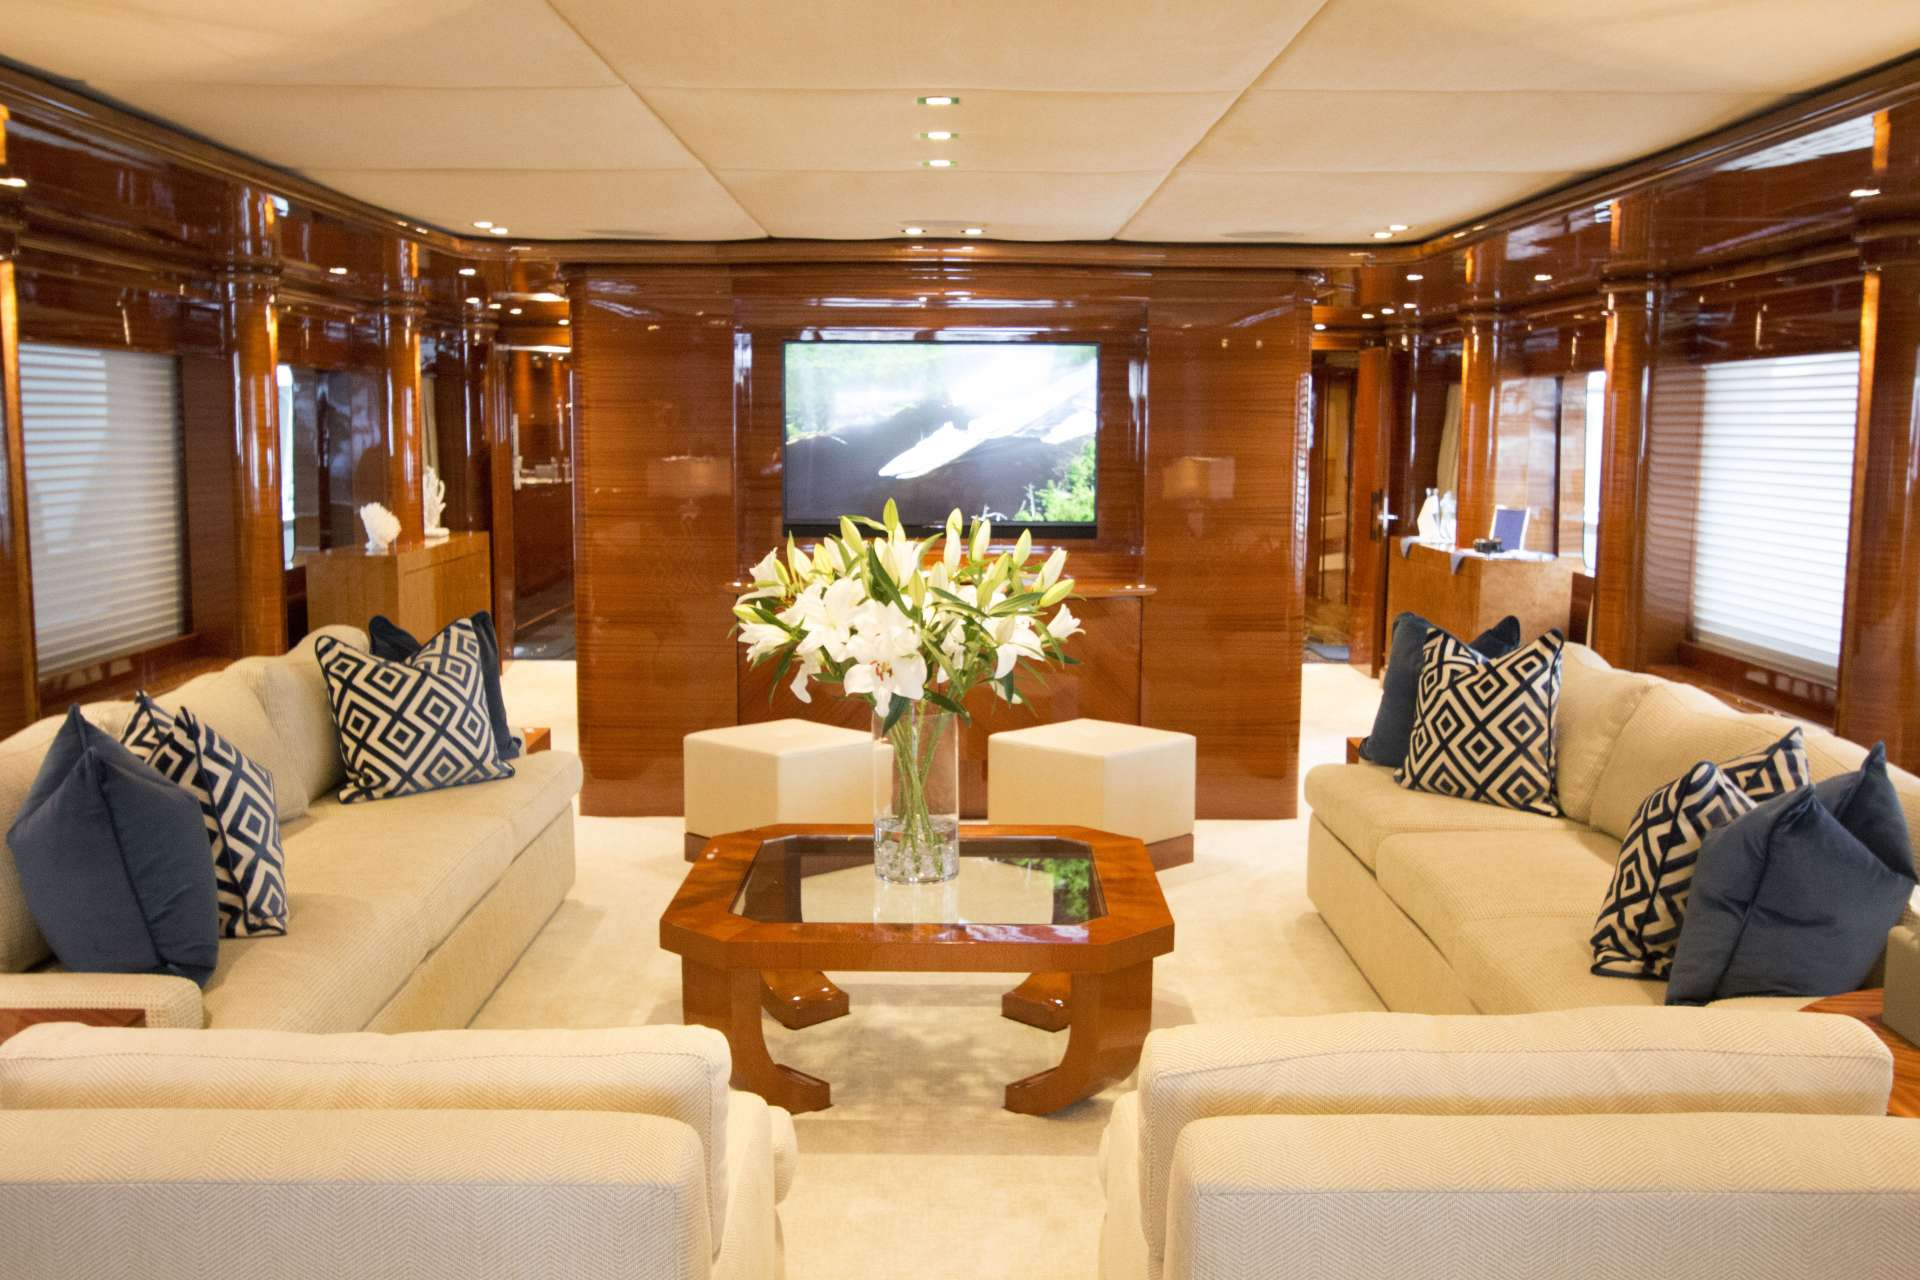 Power Yacht 'Power', 10 PAX, 9 Crew, 164.00 Ft, 50.00 Meters, Built 2010, Trinity Yachts, Refit Year